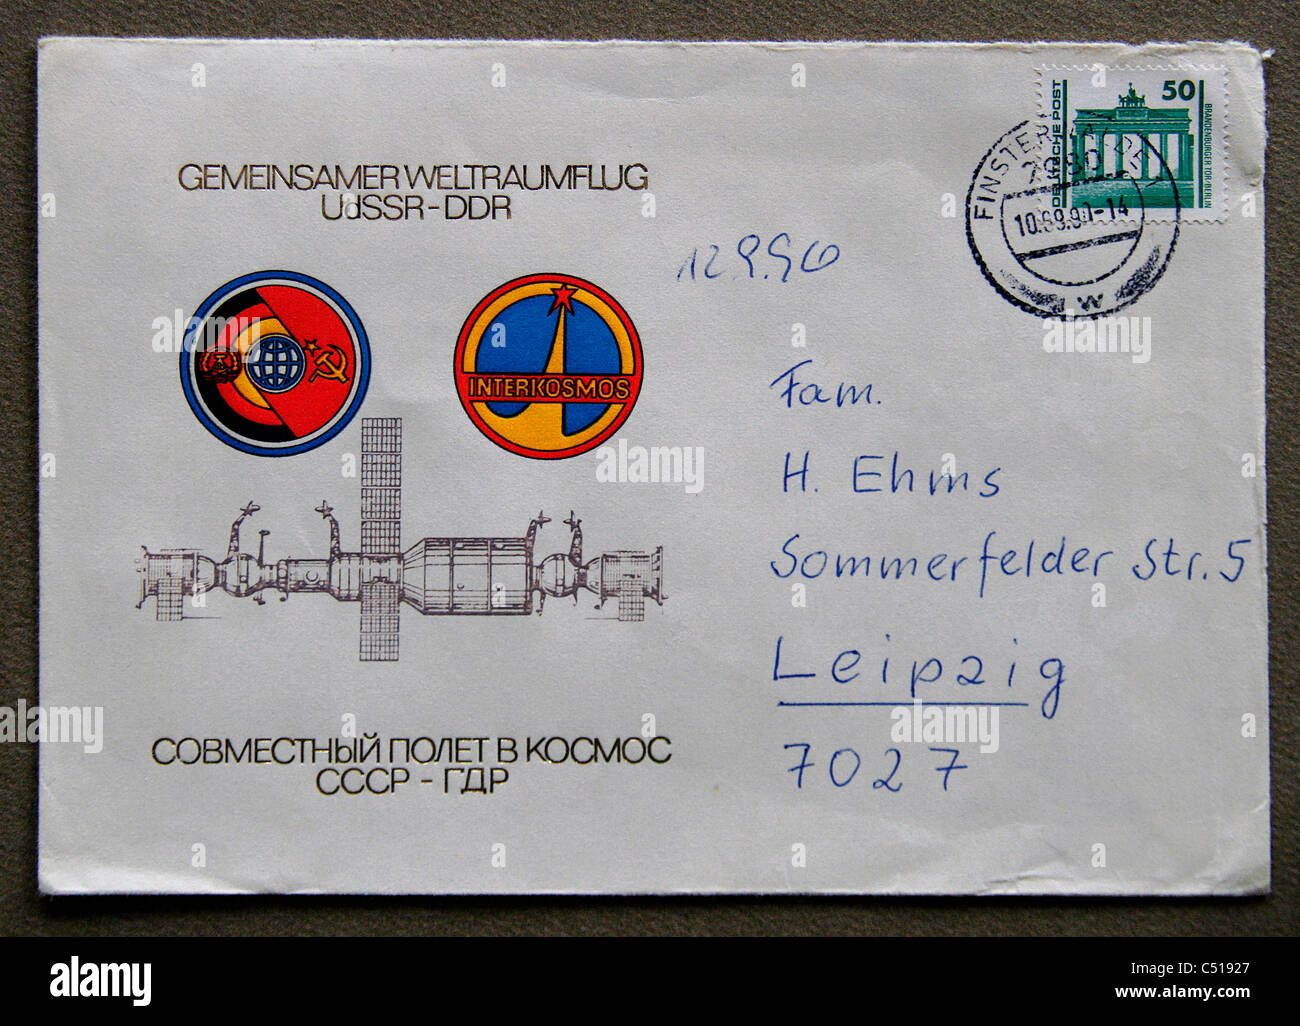 A first day cover / letter representing the joint space flight between the former GDR and UDSSR - Stock Image